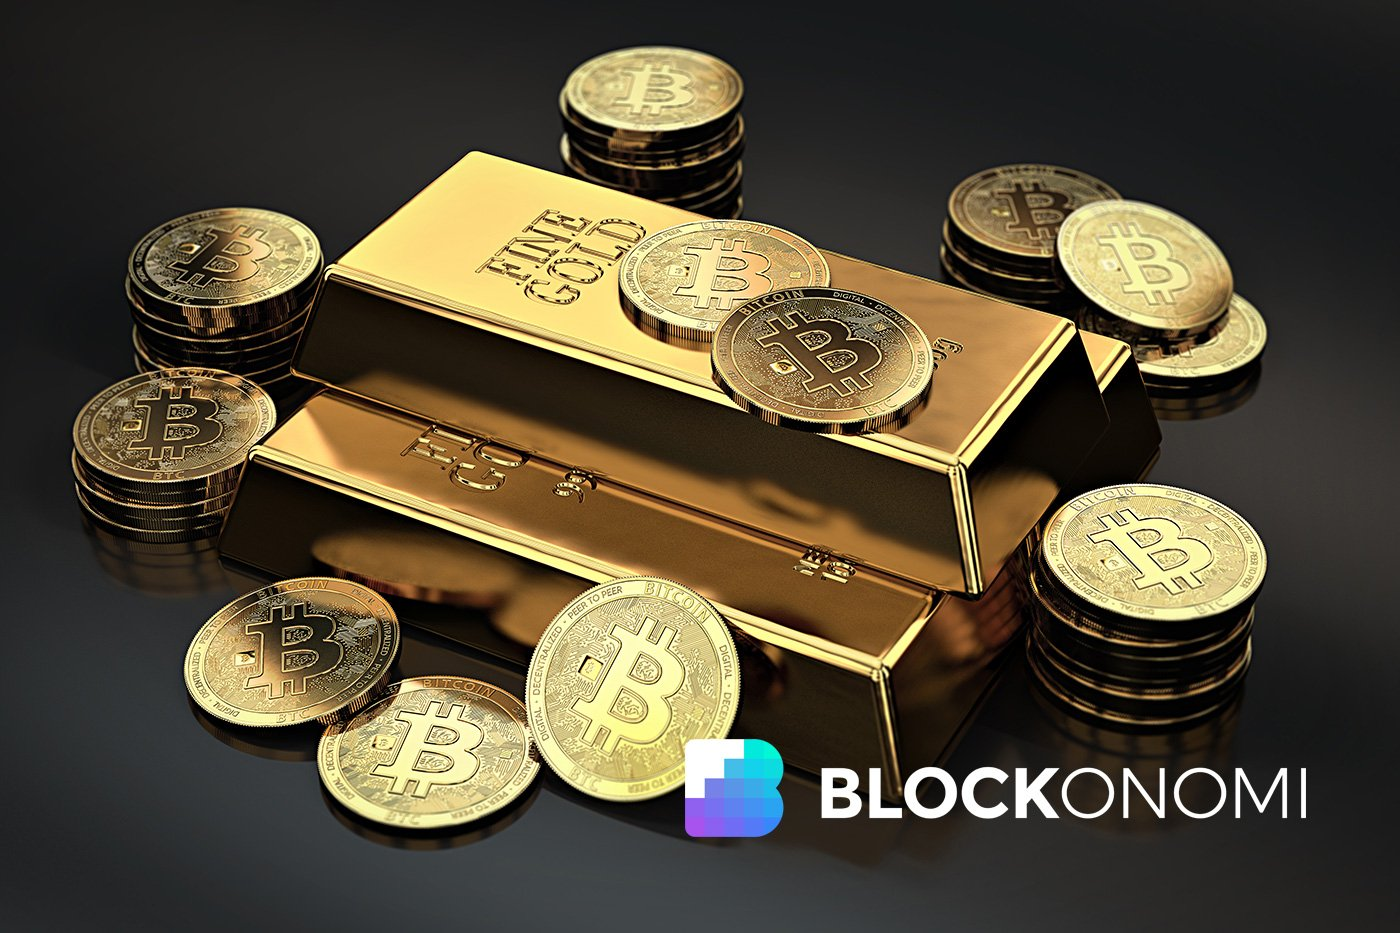 Galaxy Digital's Novogratz Is Unequivocally Sure That Bitcoin Will Be Digital Gold